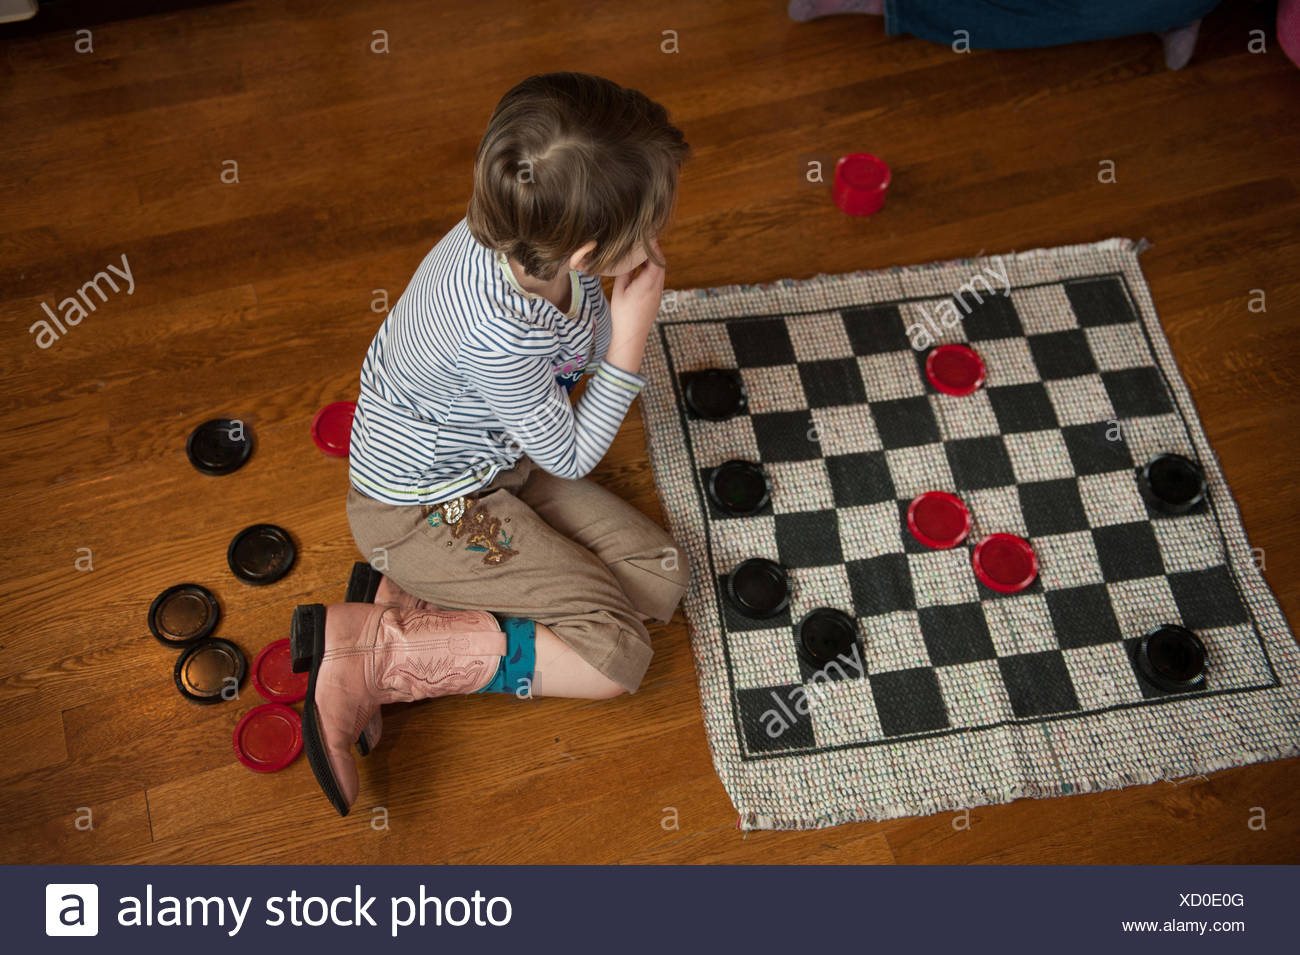 Girl sitting on wooden floor playing draughts - Stock Image